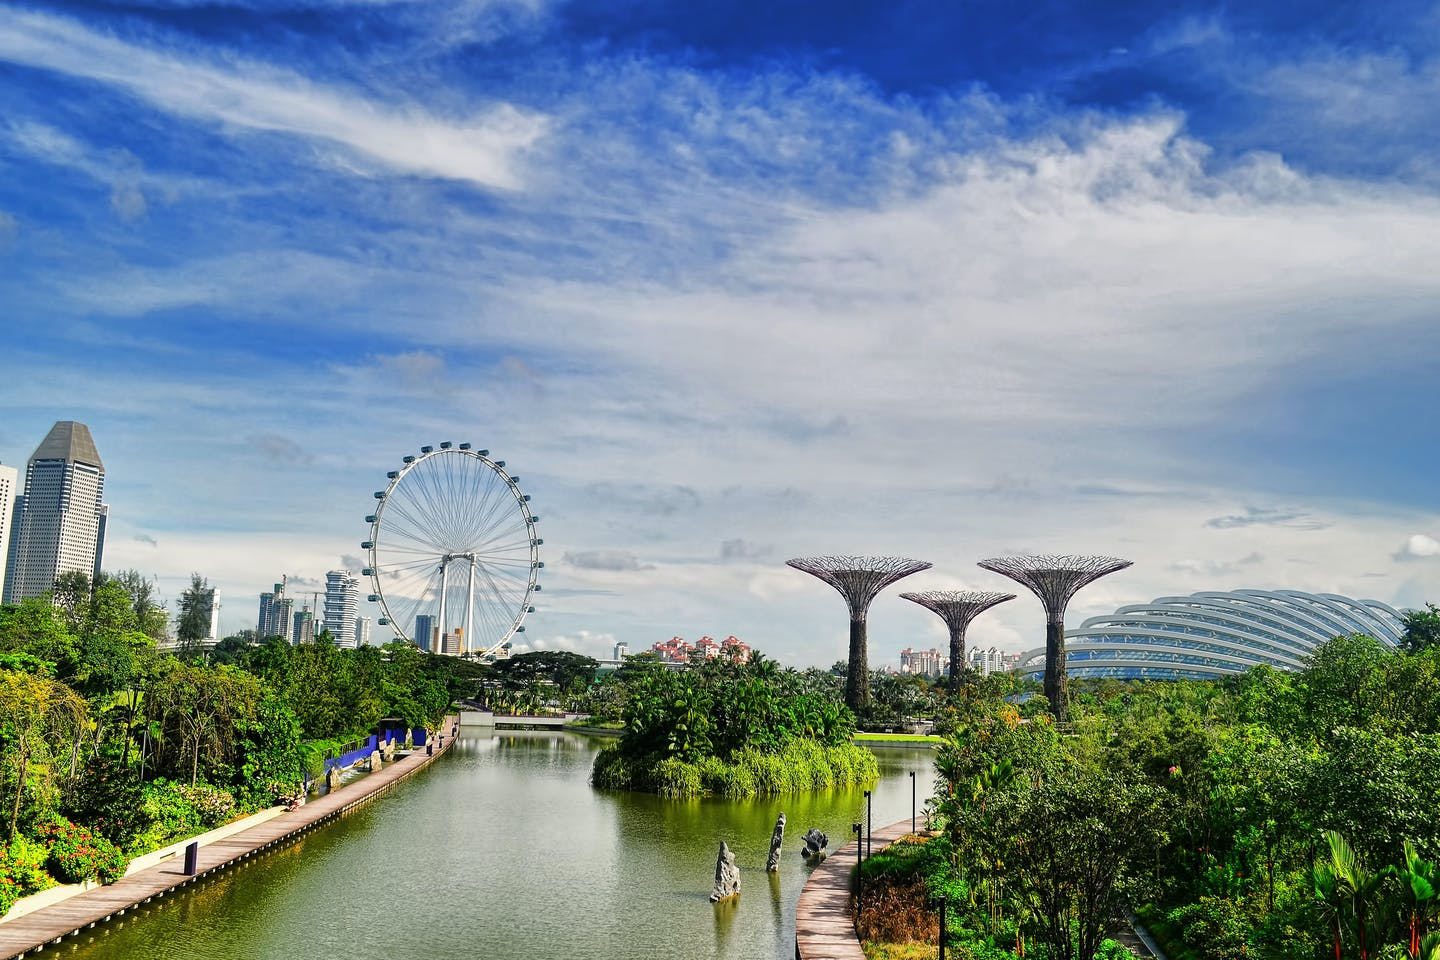 A view of Singapore's Marina Bay area